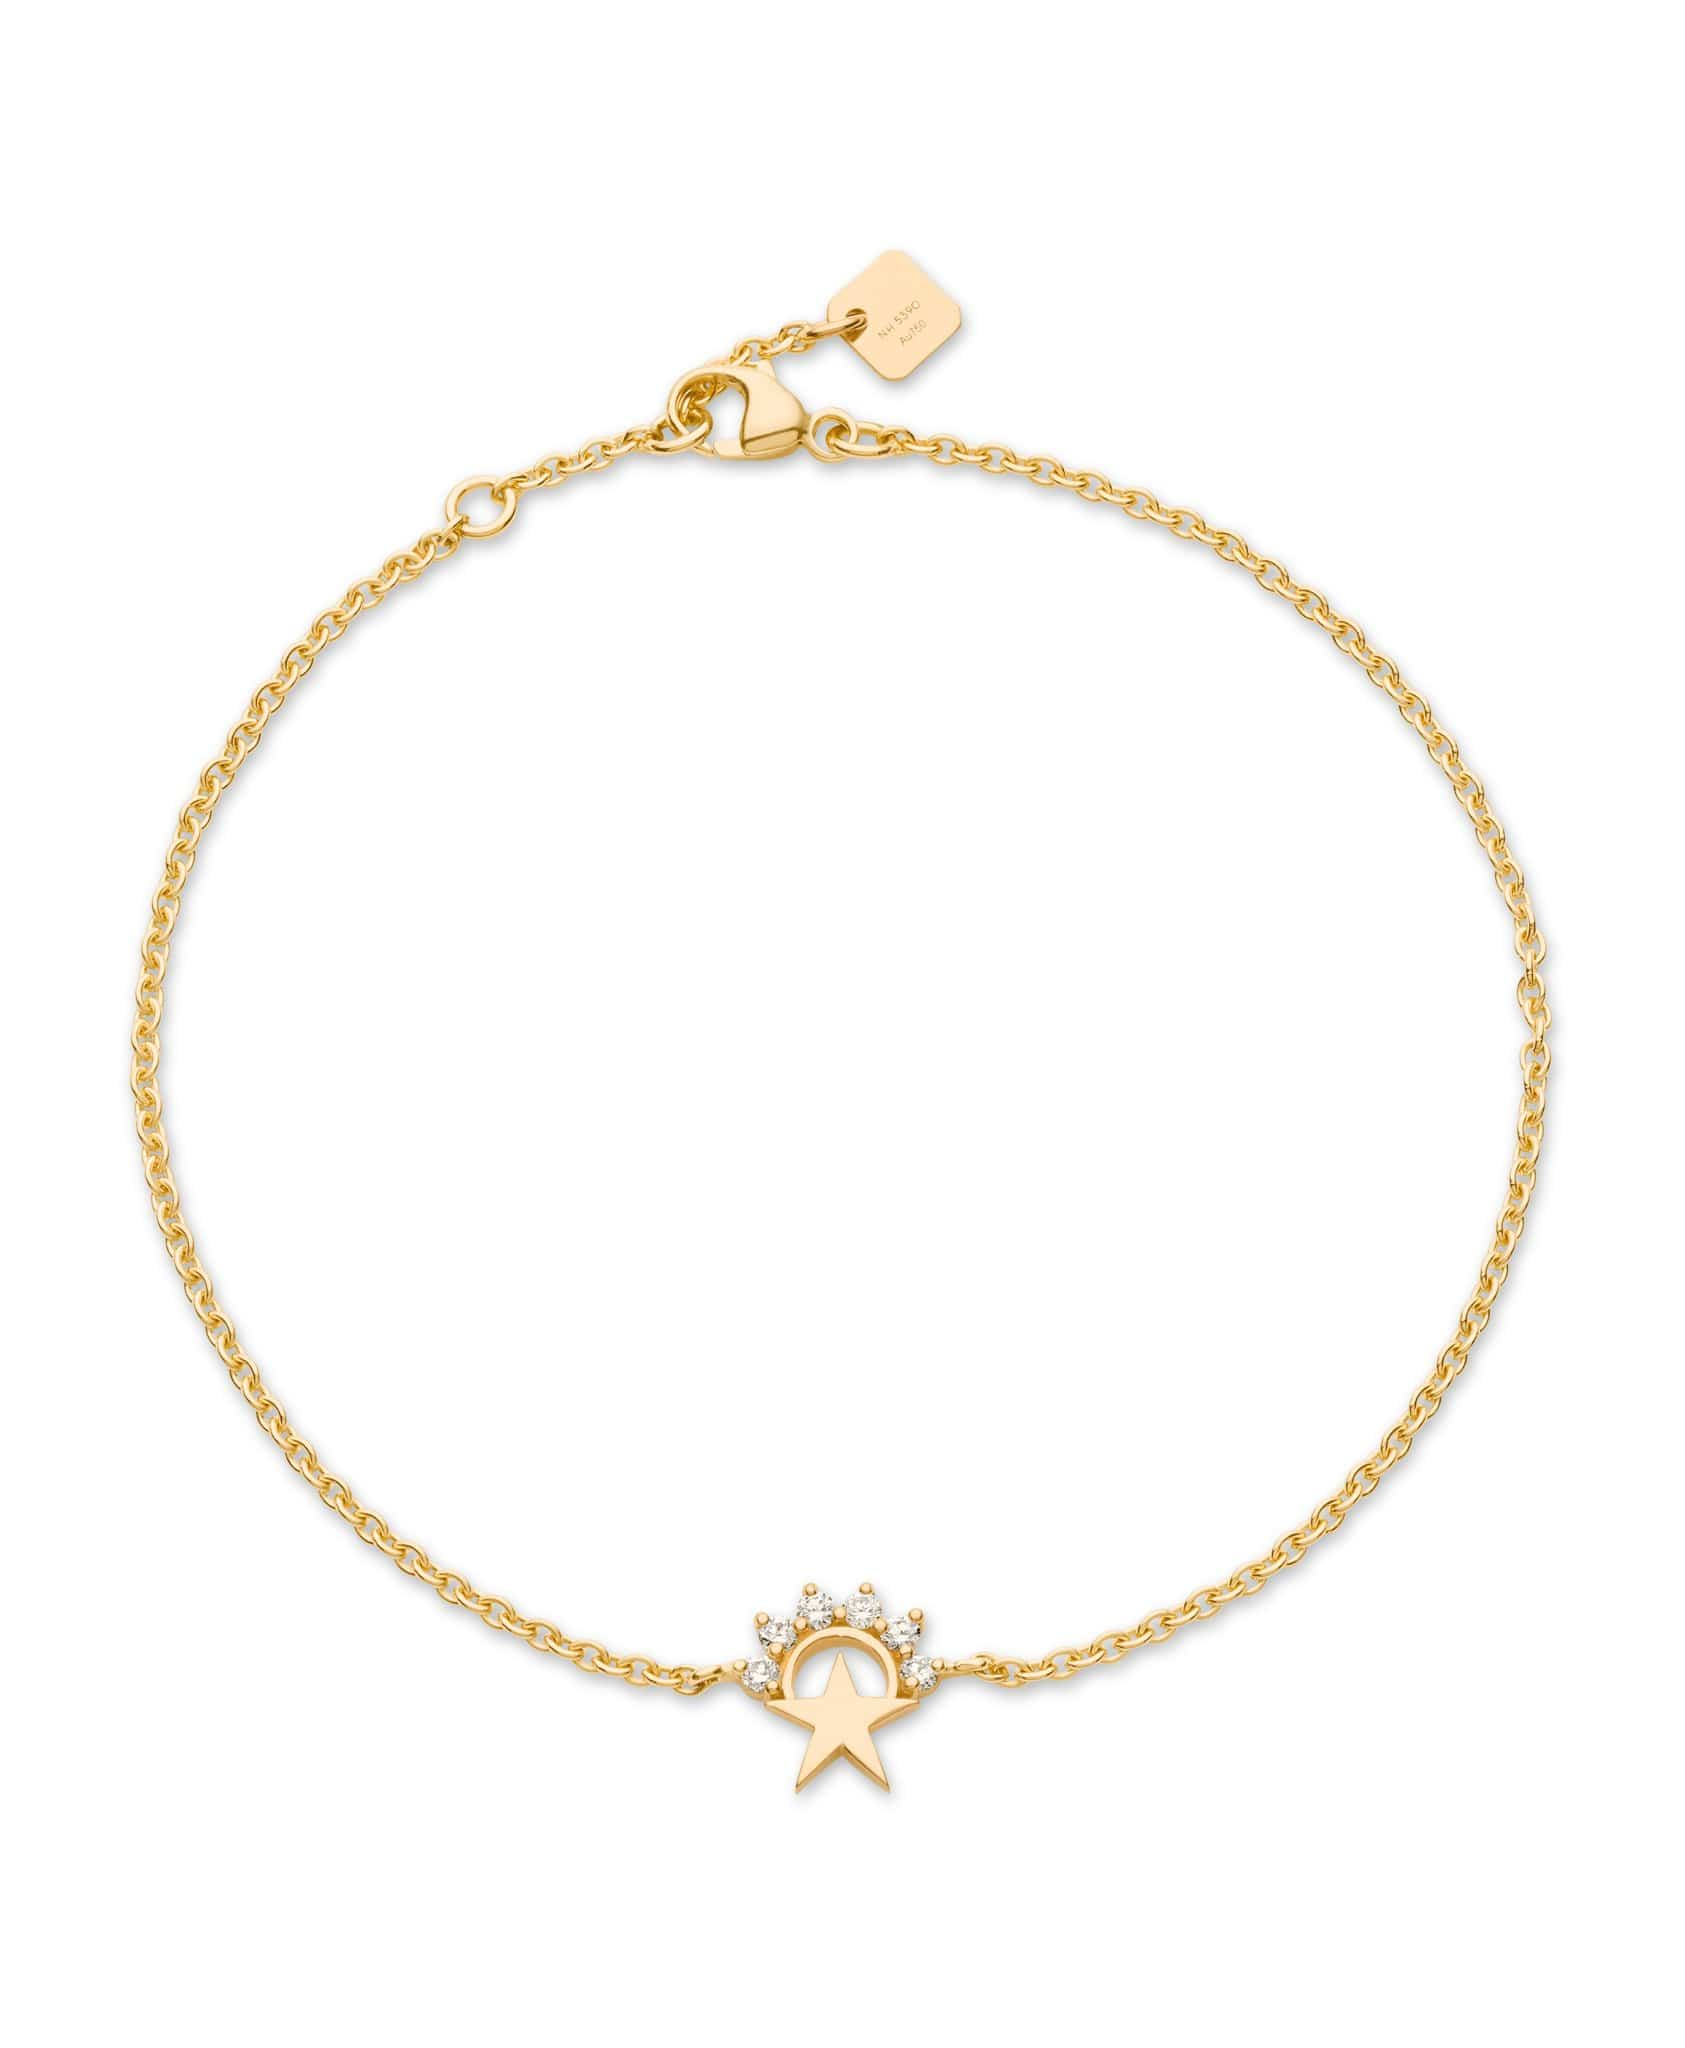 Small Star Bracelet: Discover Luxury Fine Jewelry | Nouvel Heritage